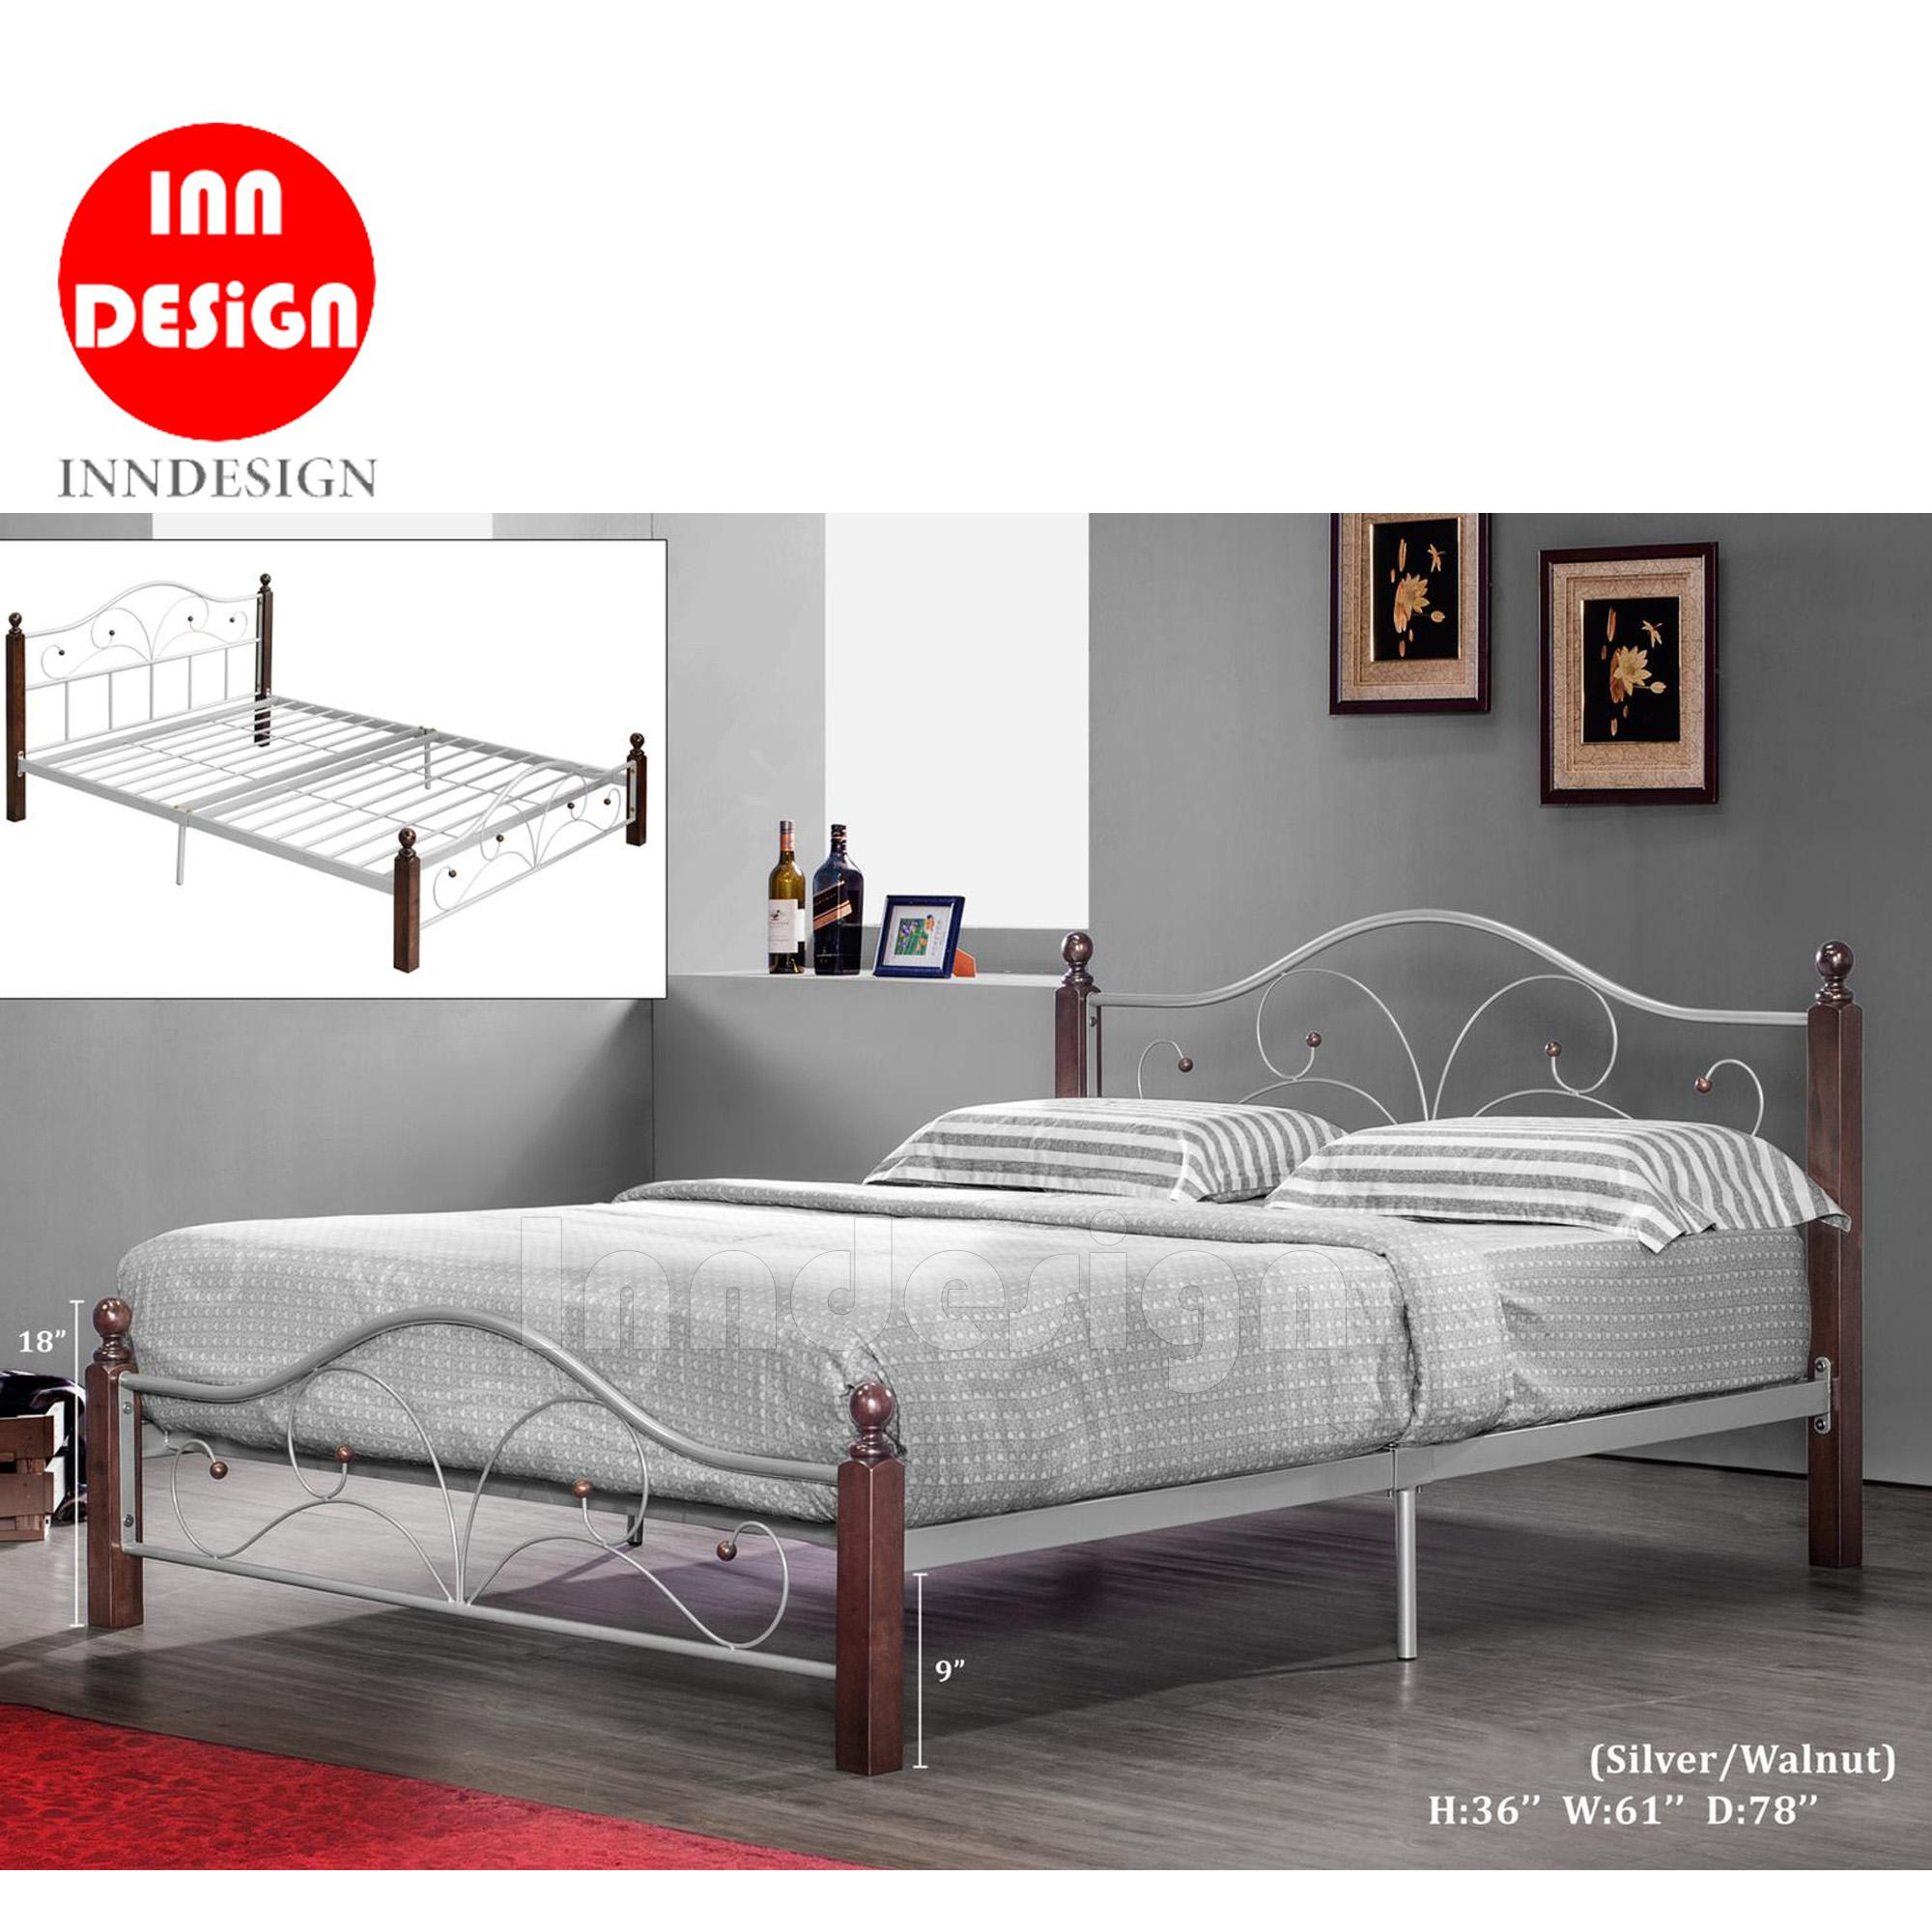 Queen Metal Bed / Metal Bed Frame (Silver + Walnut)